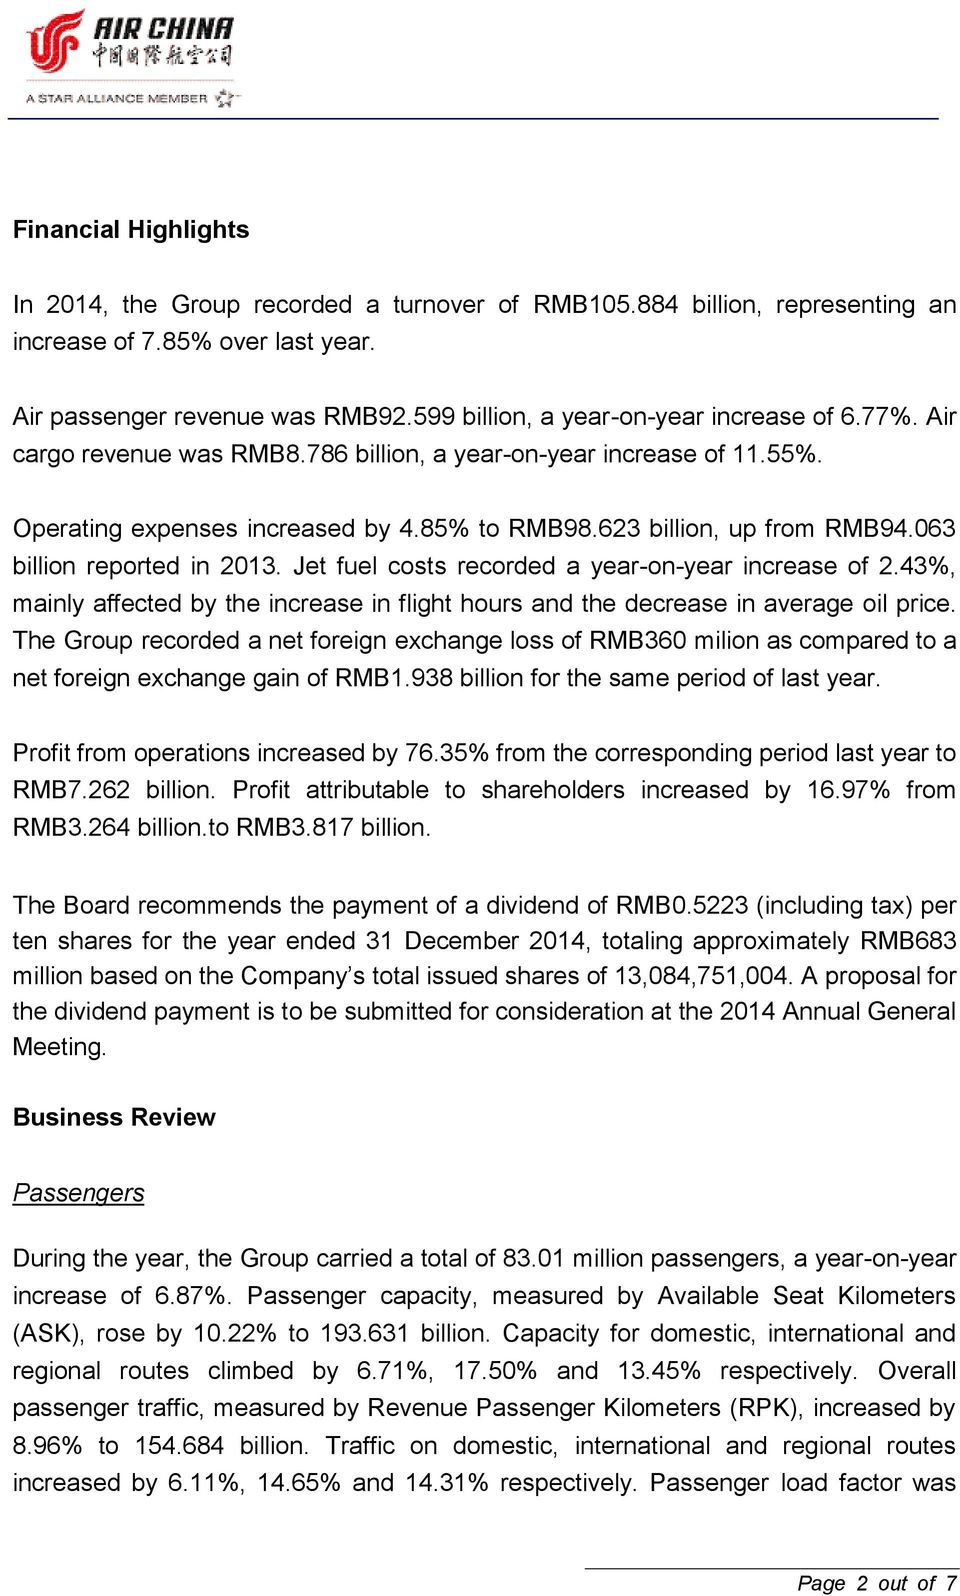 063 billion reported in 2013. Jet fuel costs recorded a year-on-year increase of 2.43%, mainly affected by the increase in flight hours and the decrease in average oil price.